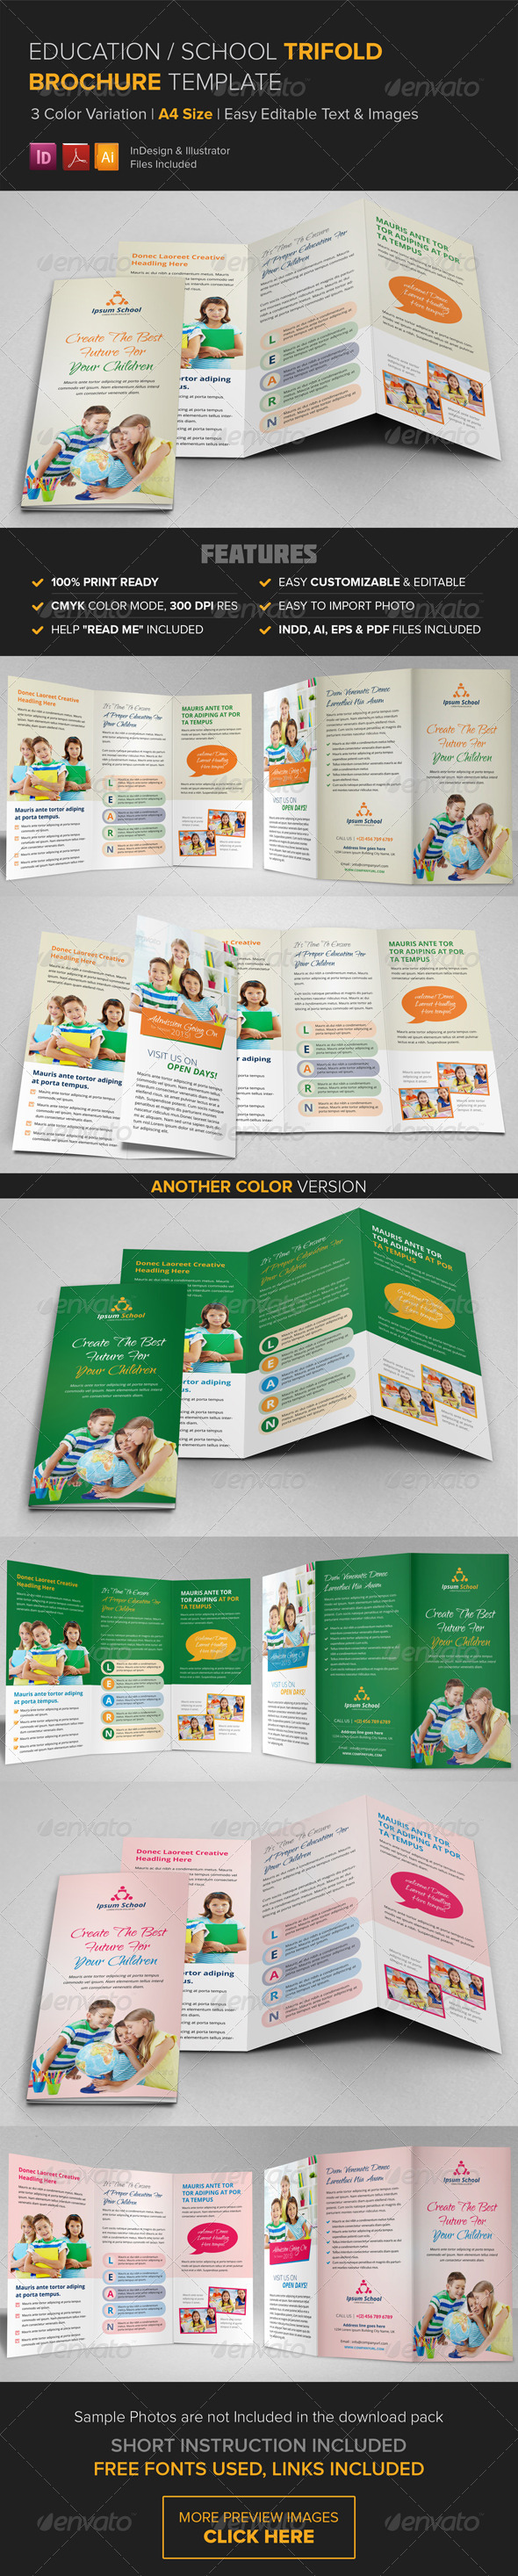 GraphicRiver Education School Trifold Brochure Template 8720694